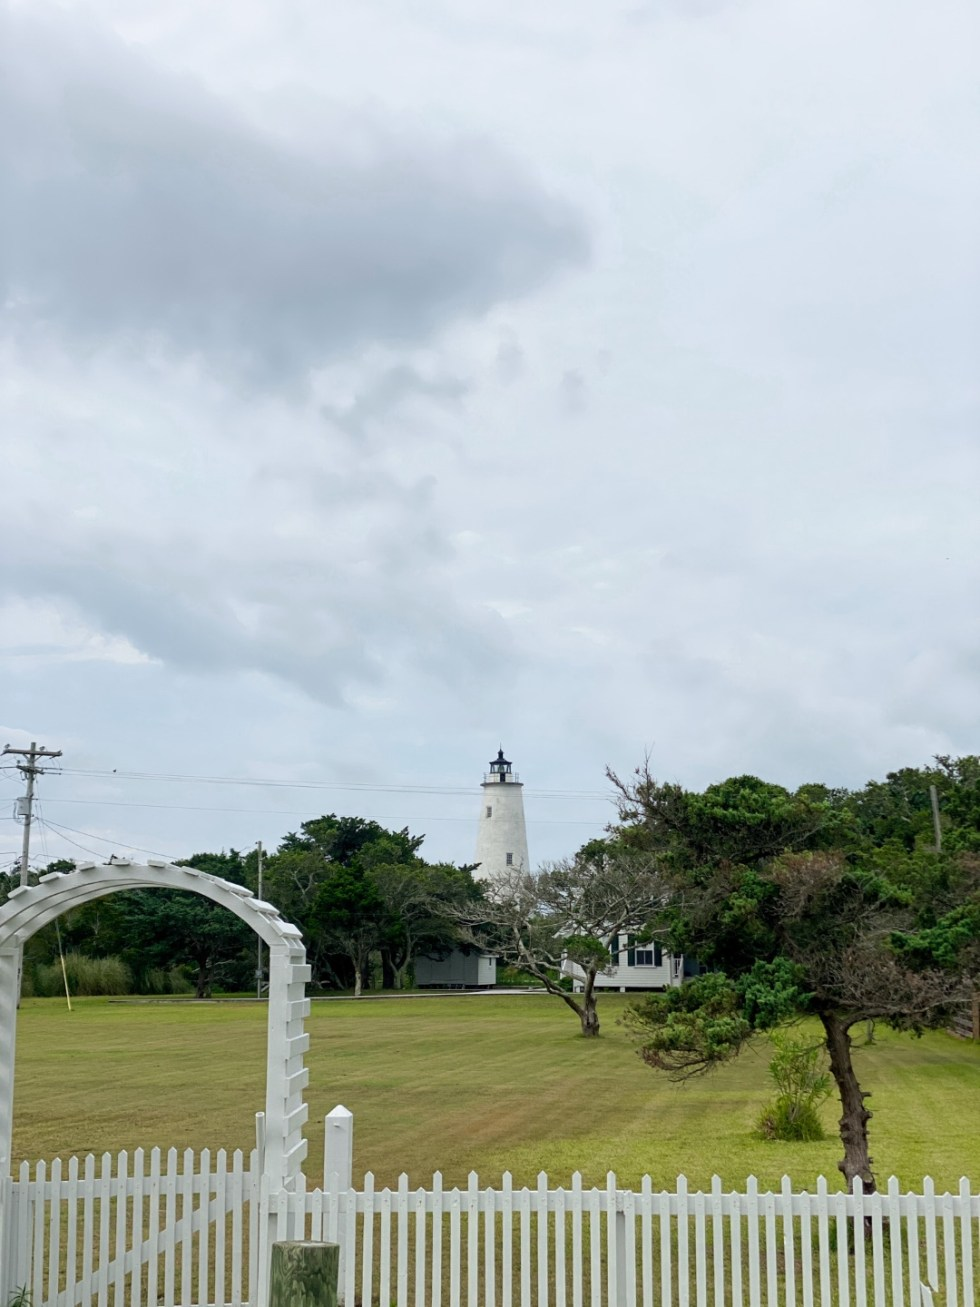 An Update on My North Carolina 100 County Tour - I'm Fixin' To - @imfixintoblog | Things to do in North Carolina by popular NC travel blog, I'm Fixin' To: image of a white lighthouse.